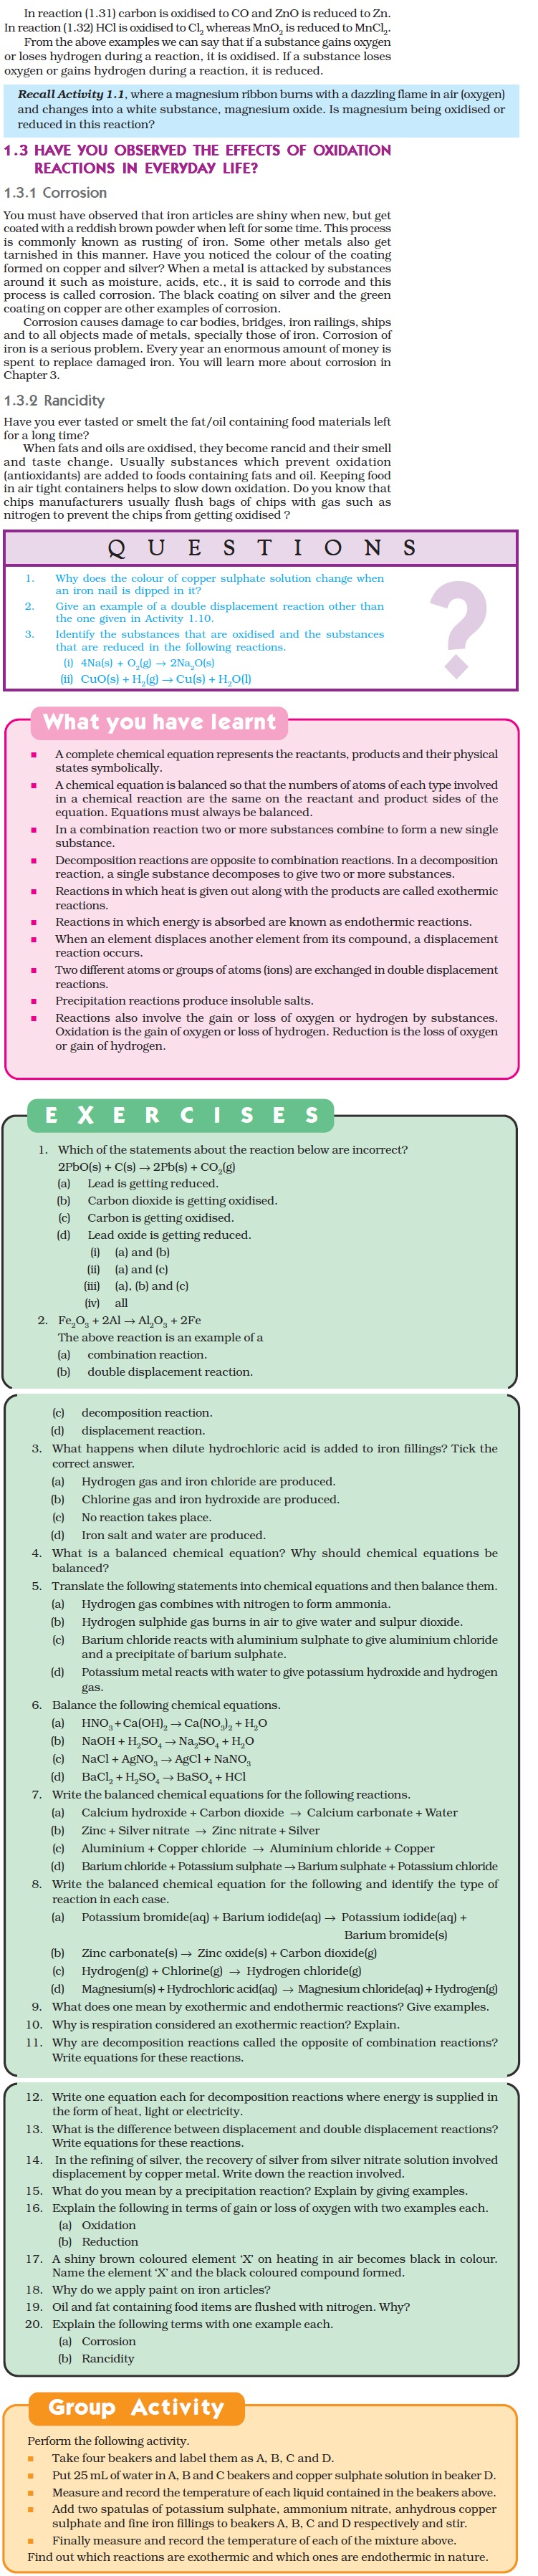 NCERT Class X Science: Chapter 1 – Chemical Reactions and Equations